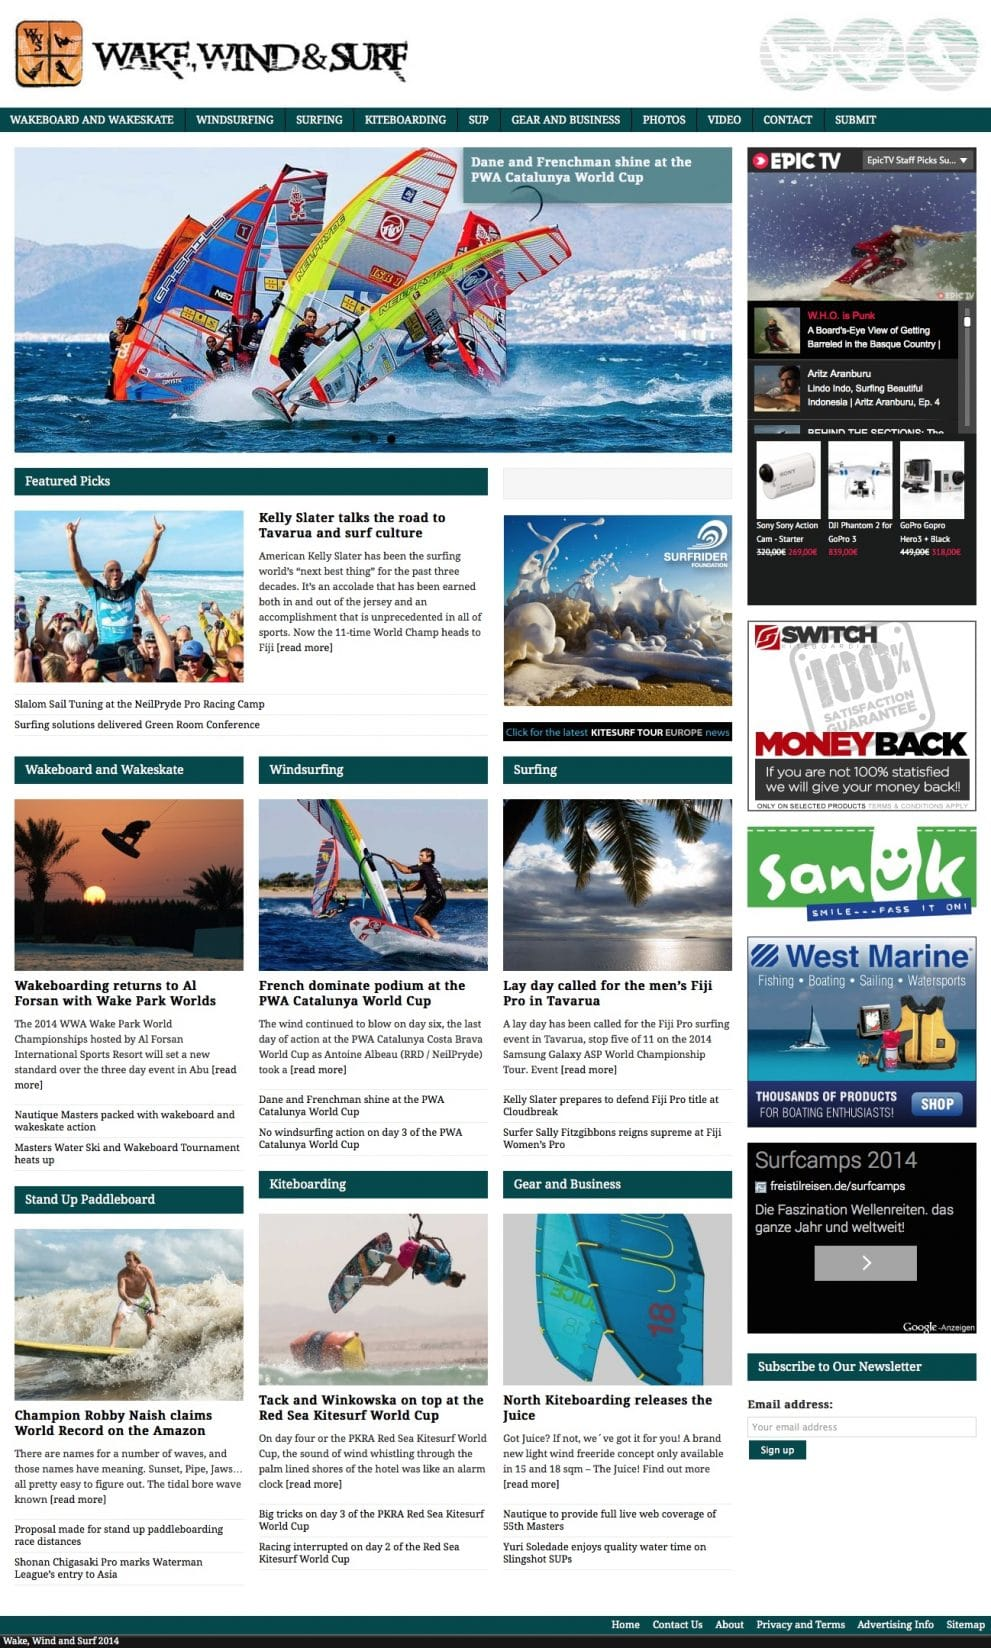 Wake, Wind & Surf News